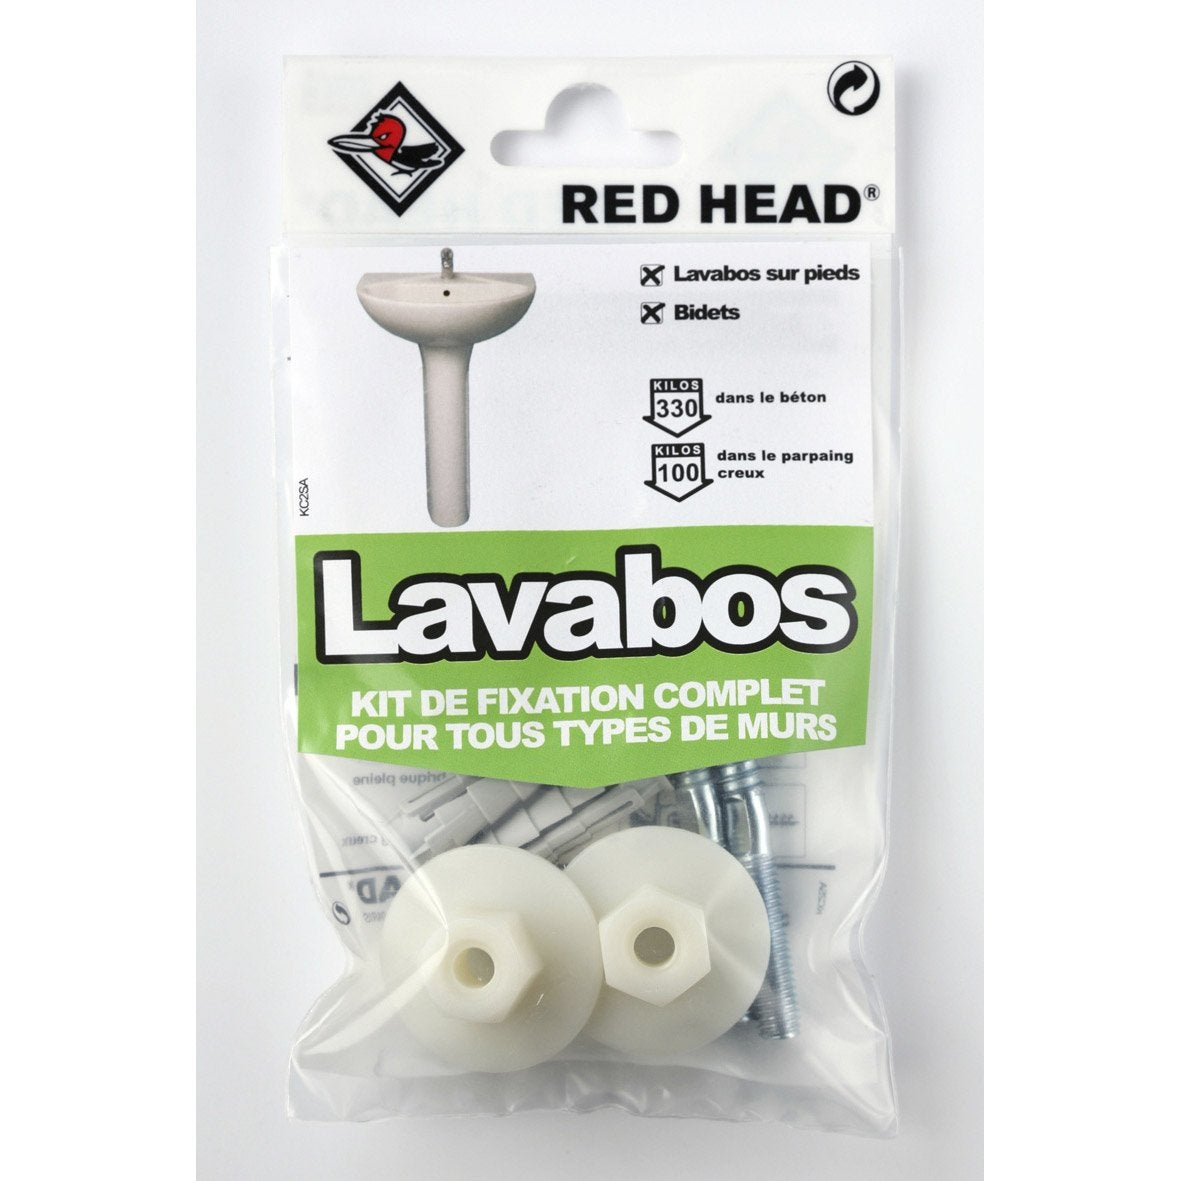 Kit chevilles expansion lavabo red head x for Fixation lavabo leroy merlin